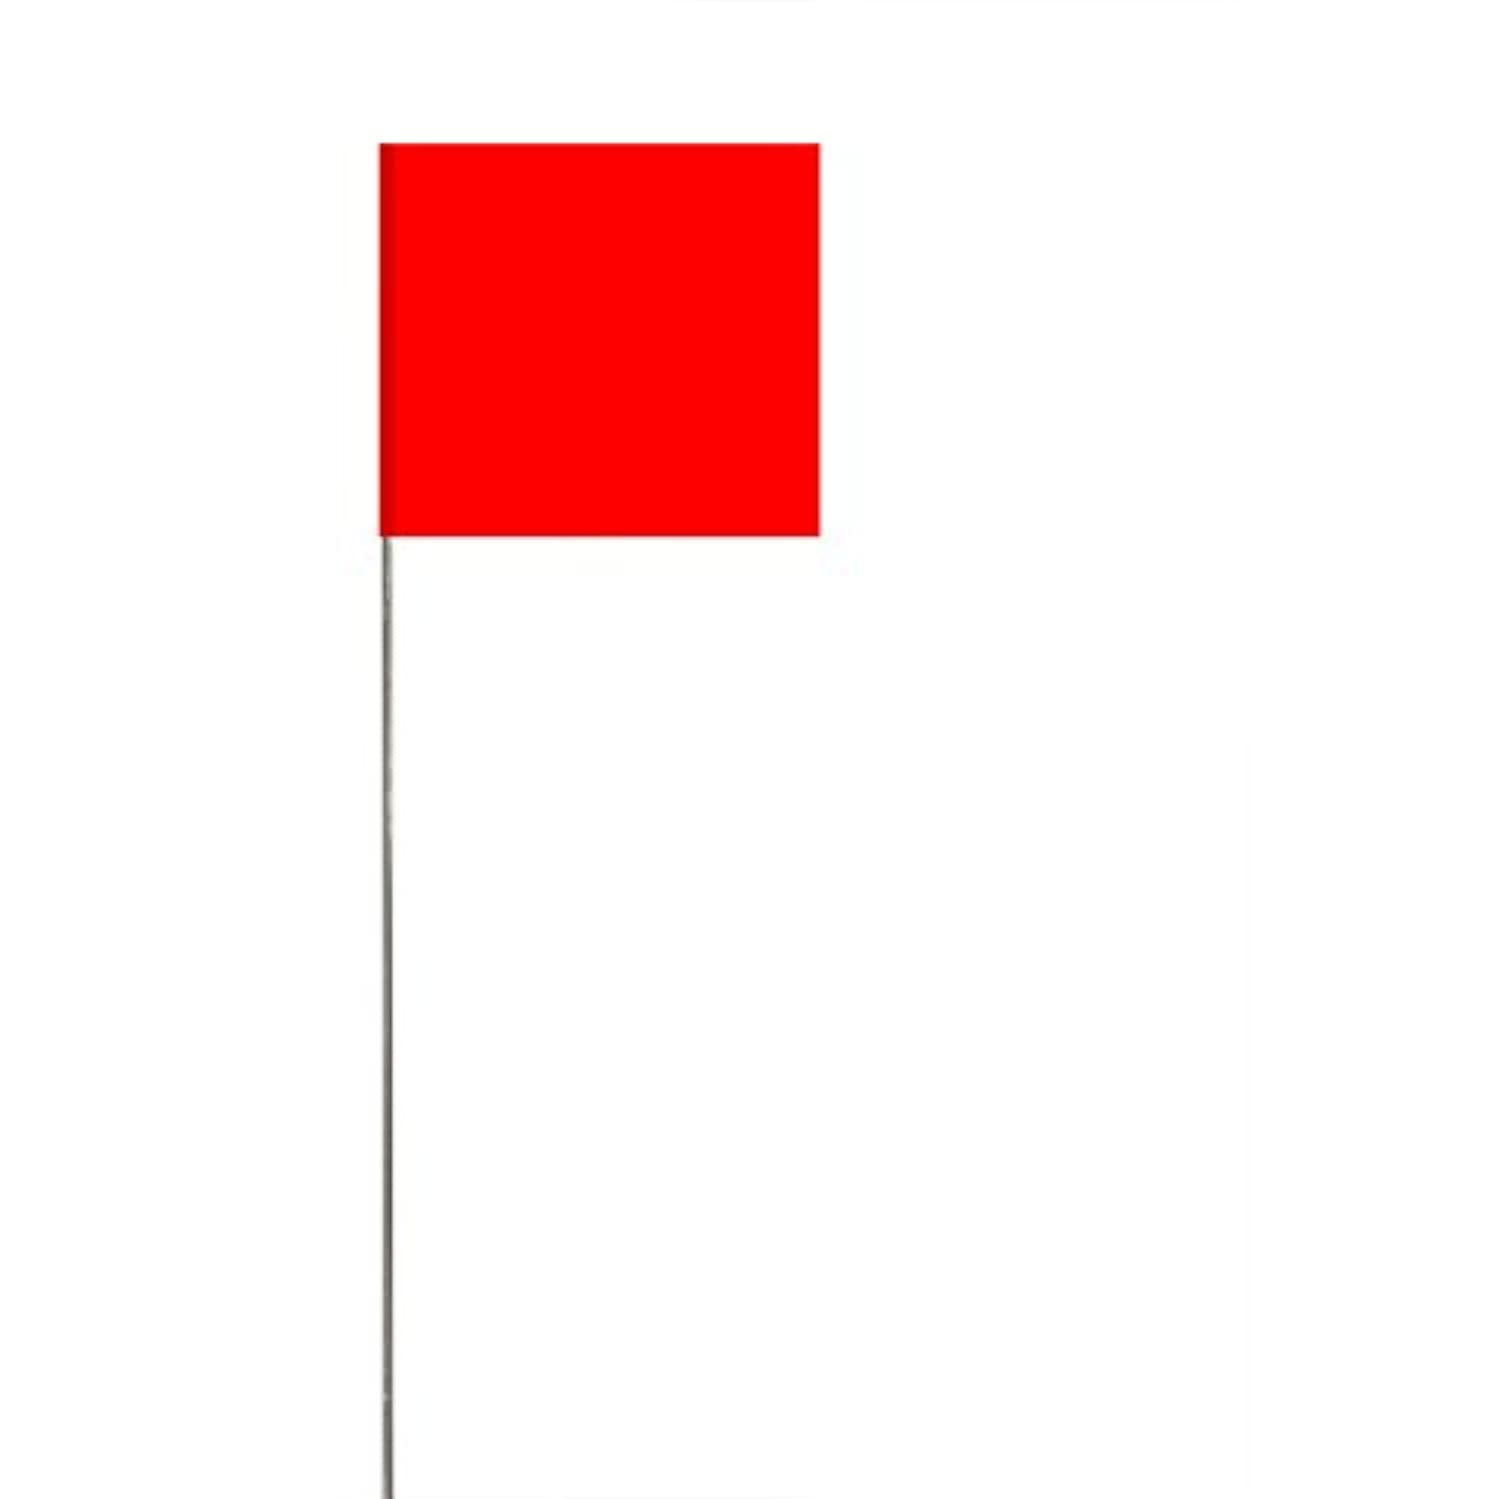 Swanson FRG15100 2.5-Inch by 3.5-Inch Marking Flags with 15-Inch Wire Staffs, Red 100-Pack